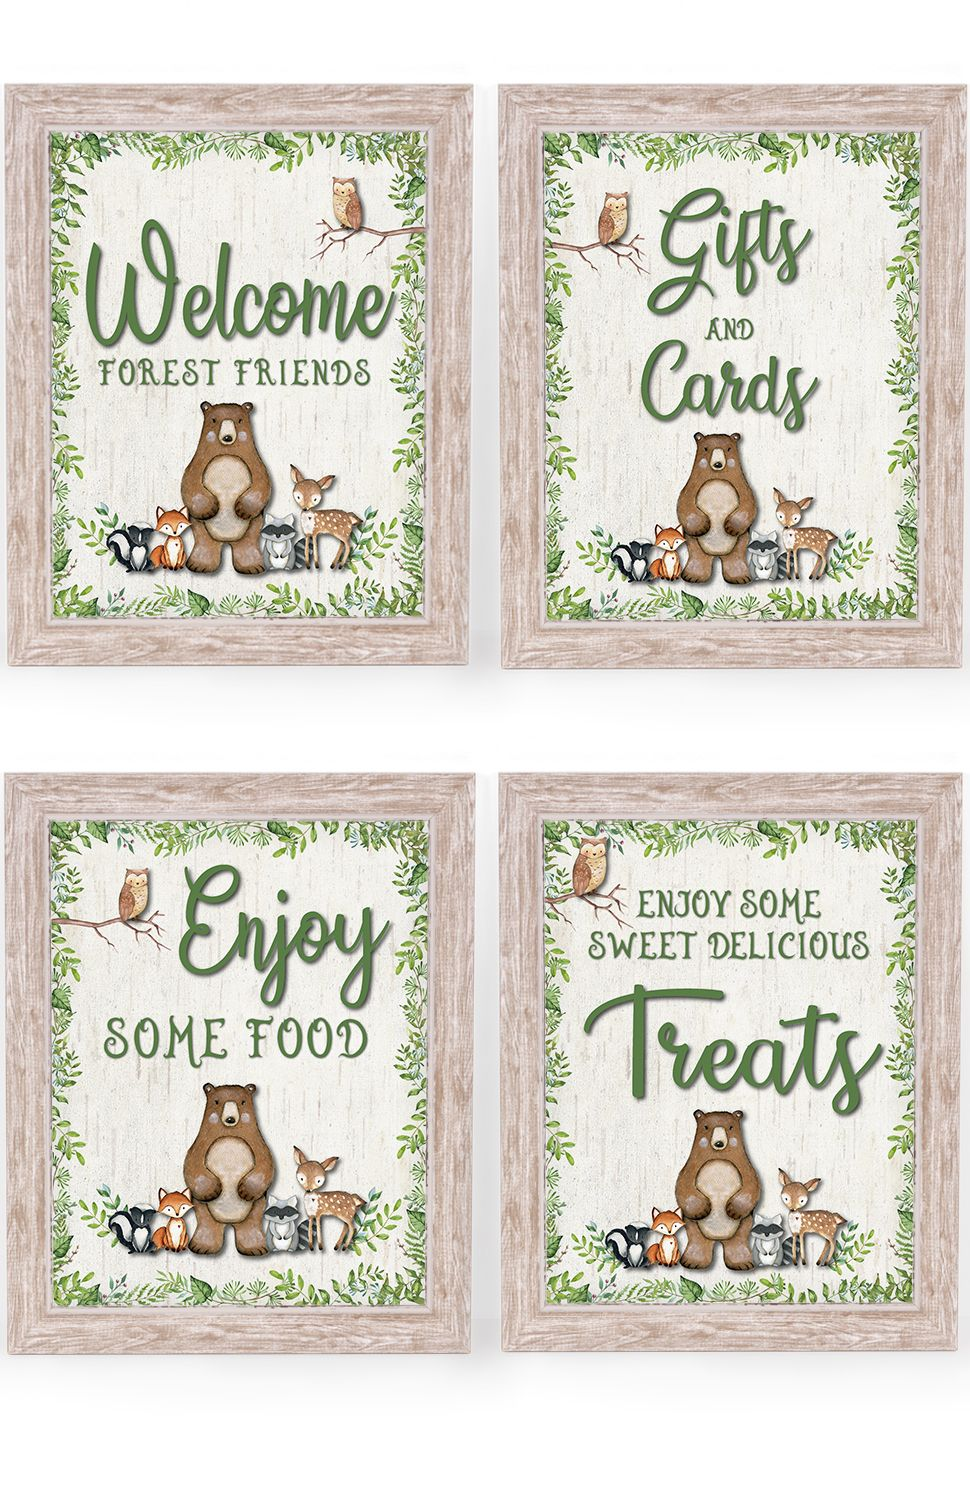 Woodland Baby Shower Decorations Super Cute For Forest Animals Theme B Woodland Creatures Baby Shower Woodland Baby Shower Decorations Animal Baby Shower Theme